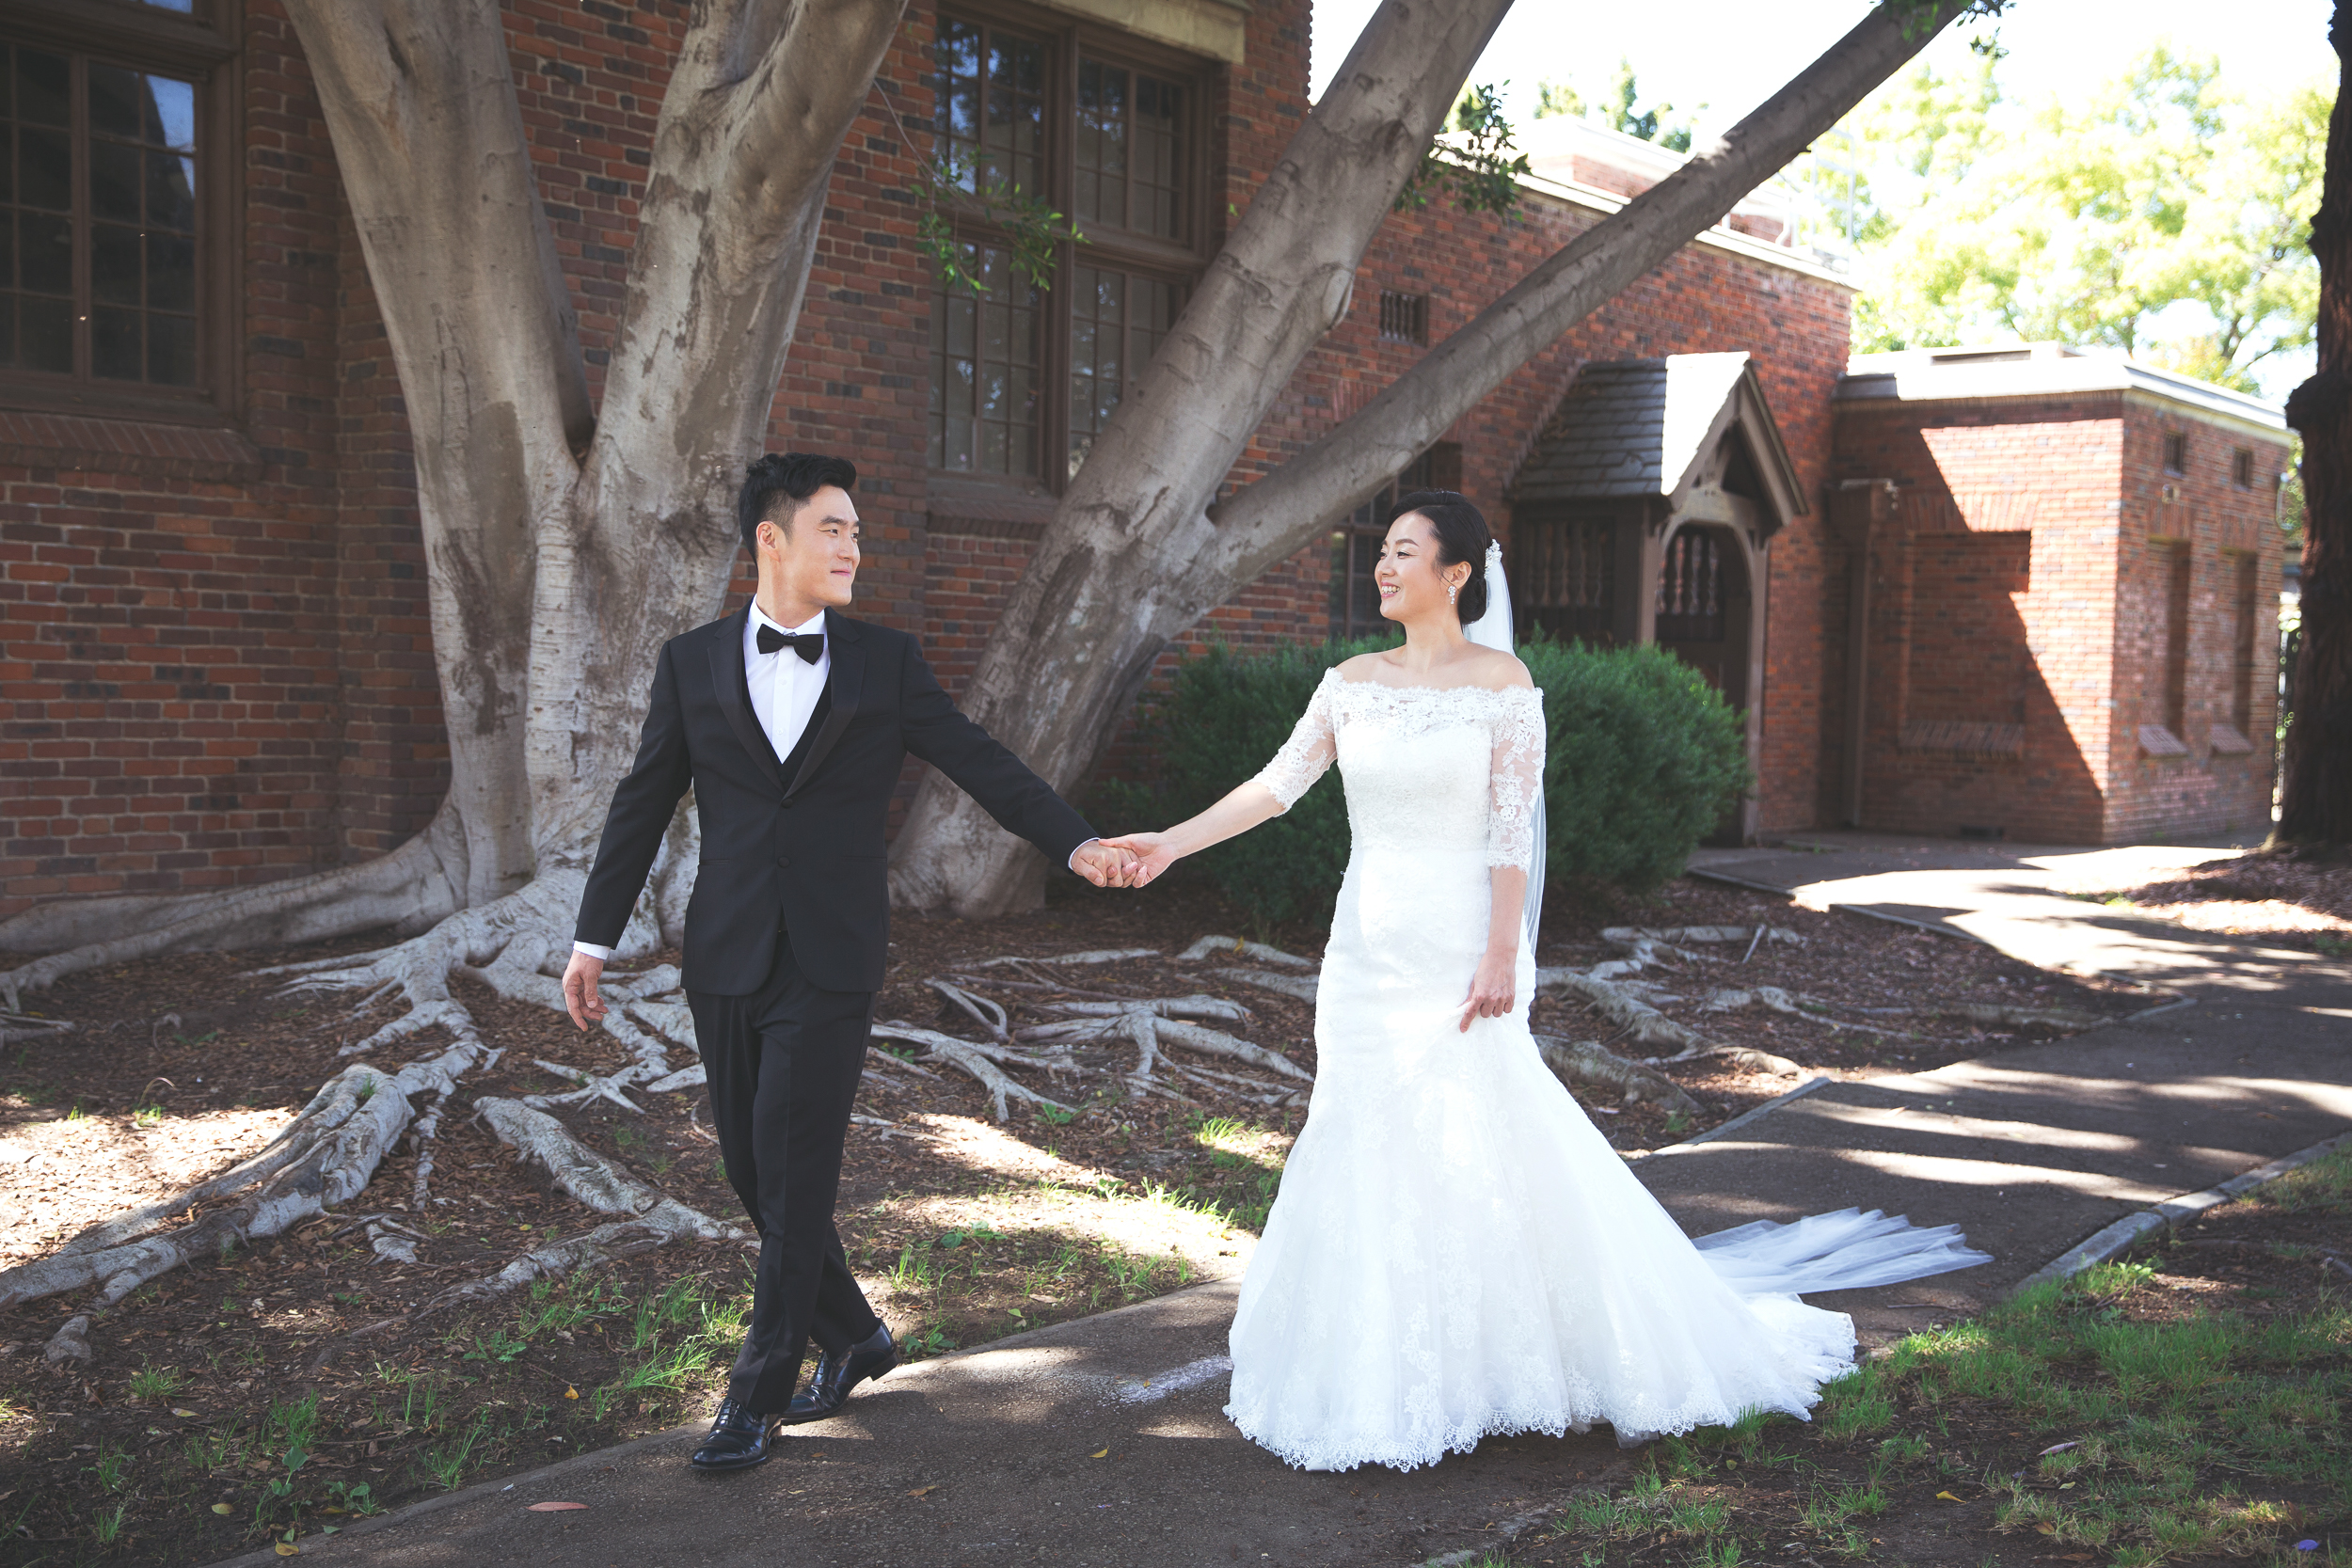 26_Ji Young Choi & Kyungmin Song Wedding